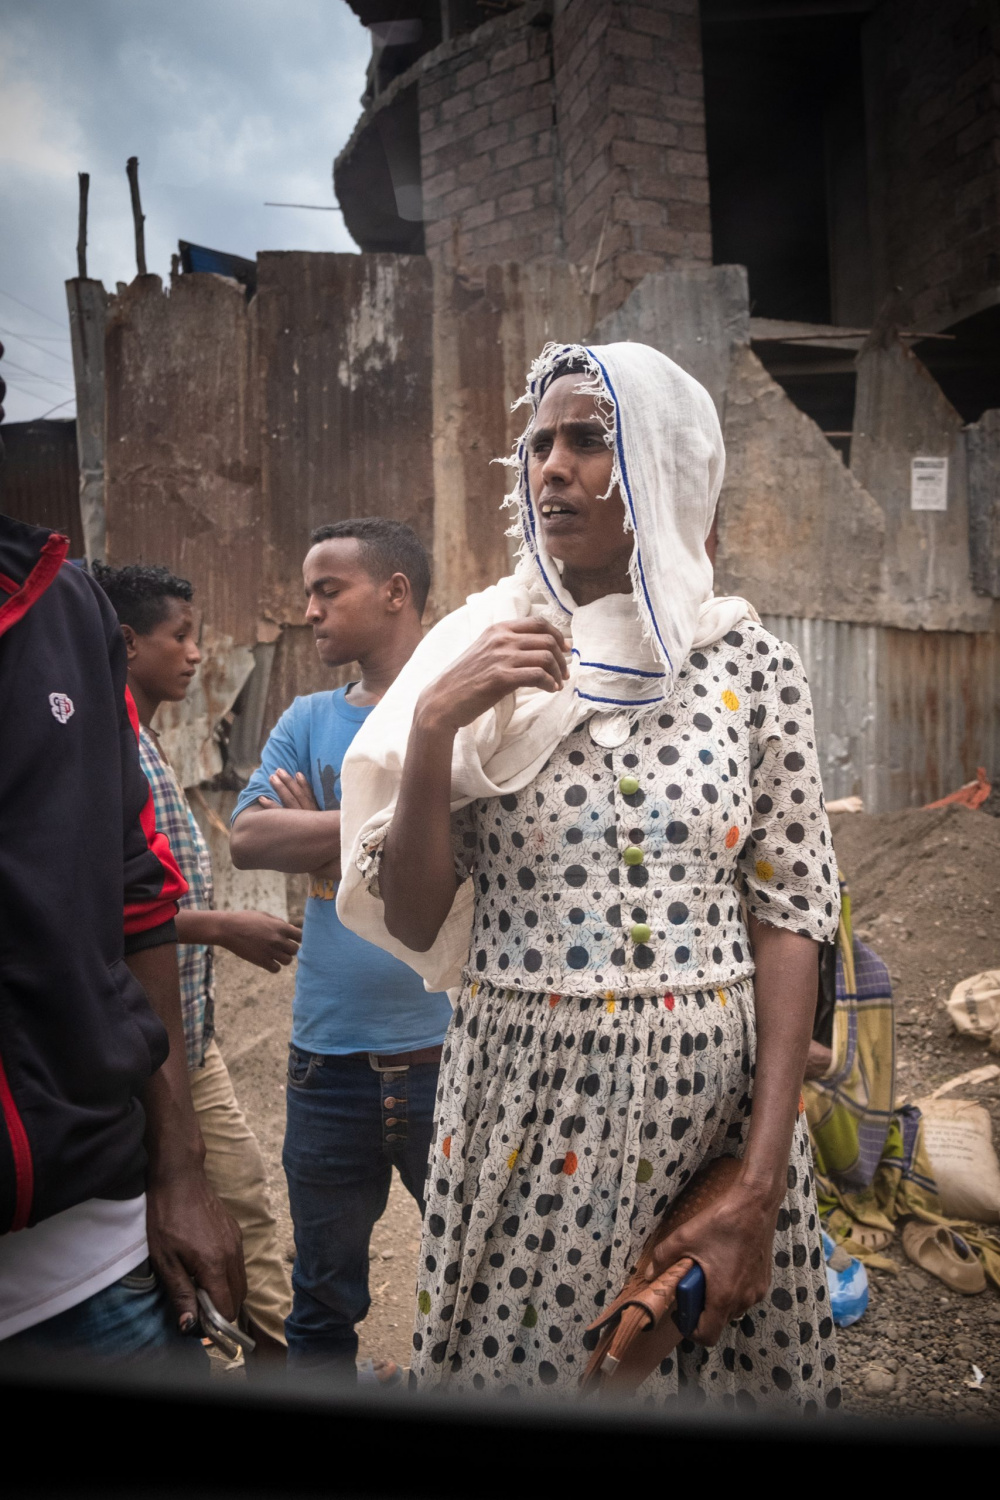 Paul Bettings, On the streets of Gondar, Ethiopia., 2019